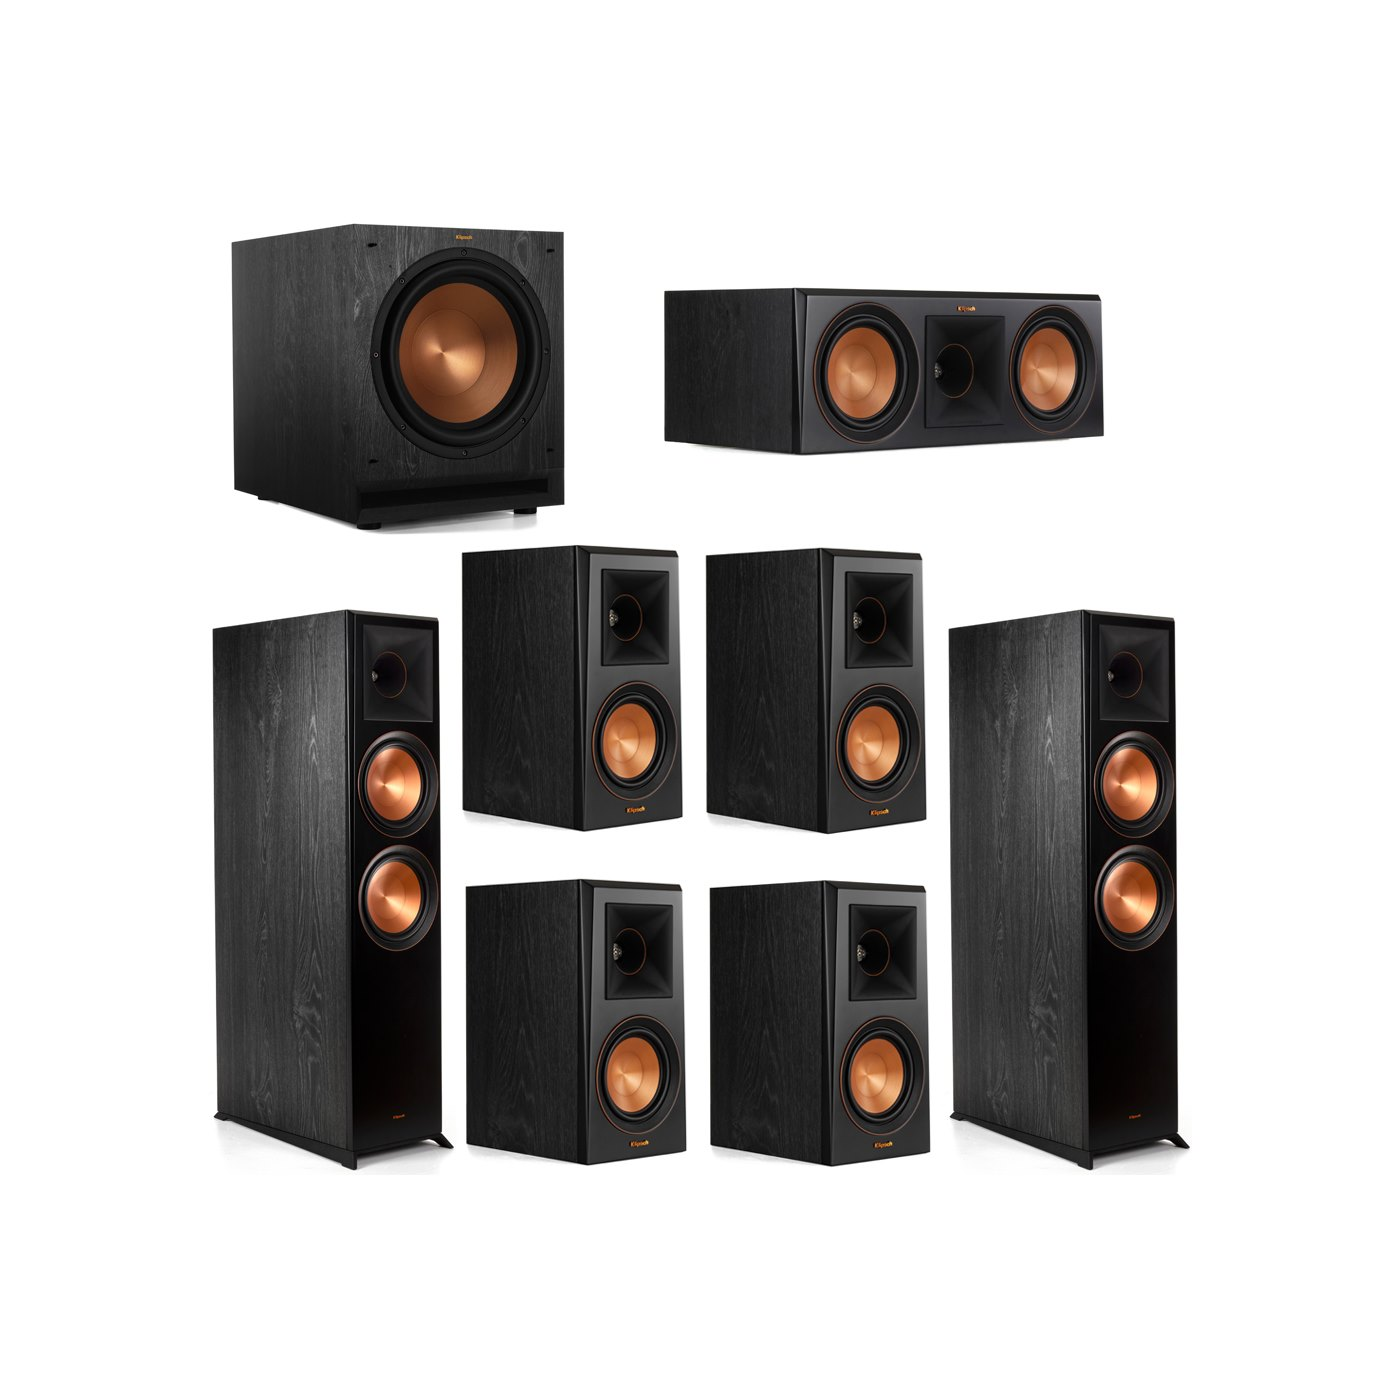 Klipsch 7.1 System with 2 RP-8000F Floorstanding Speakers, 1 Klipsch RP-600C Center Speaker, 4 Klipsch RP-500M Surround Speakers, 1 Klipsch SPL-120 Subwoofer